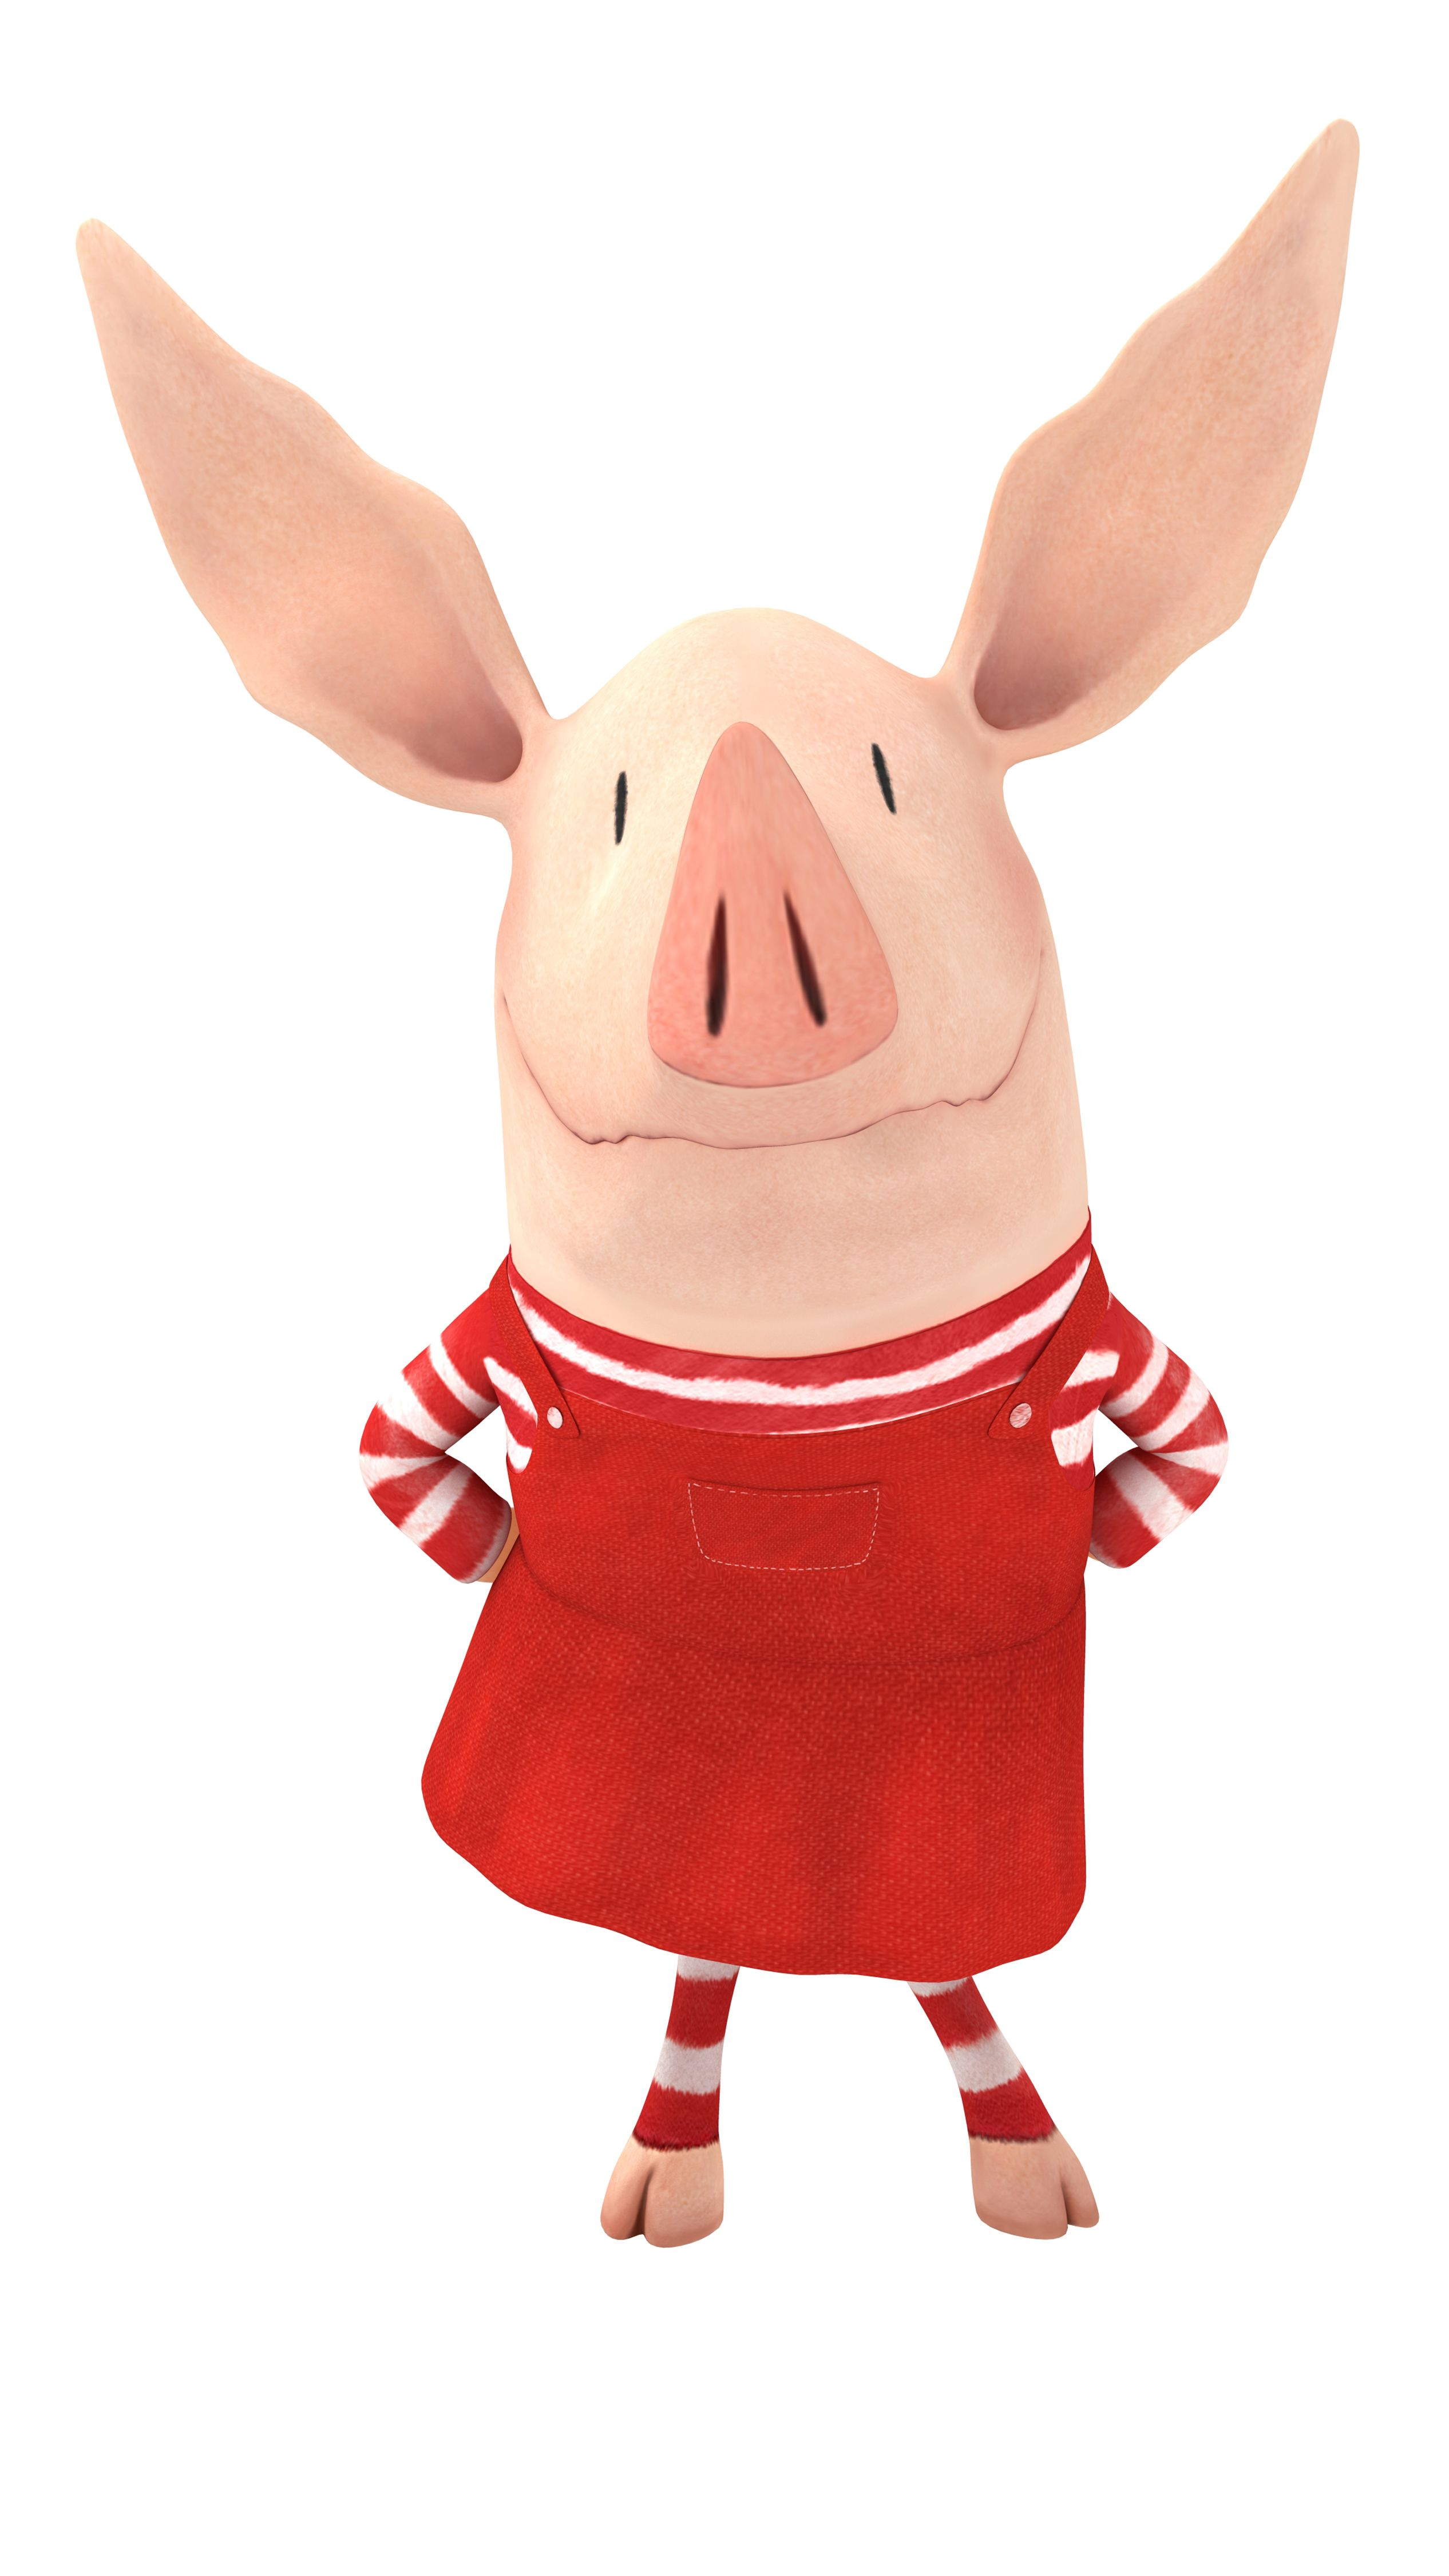 Olivia the pig gets her own Nickelodeon series   Cerdo, Puerquitos y ...